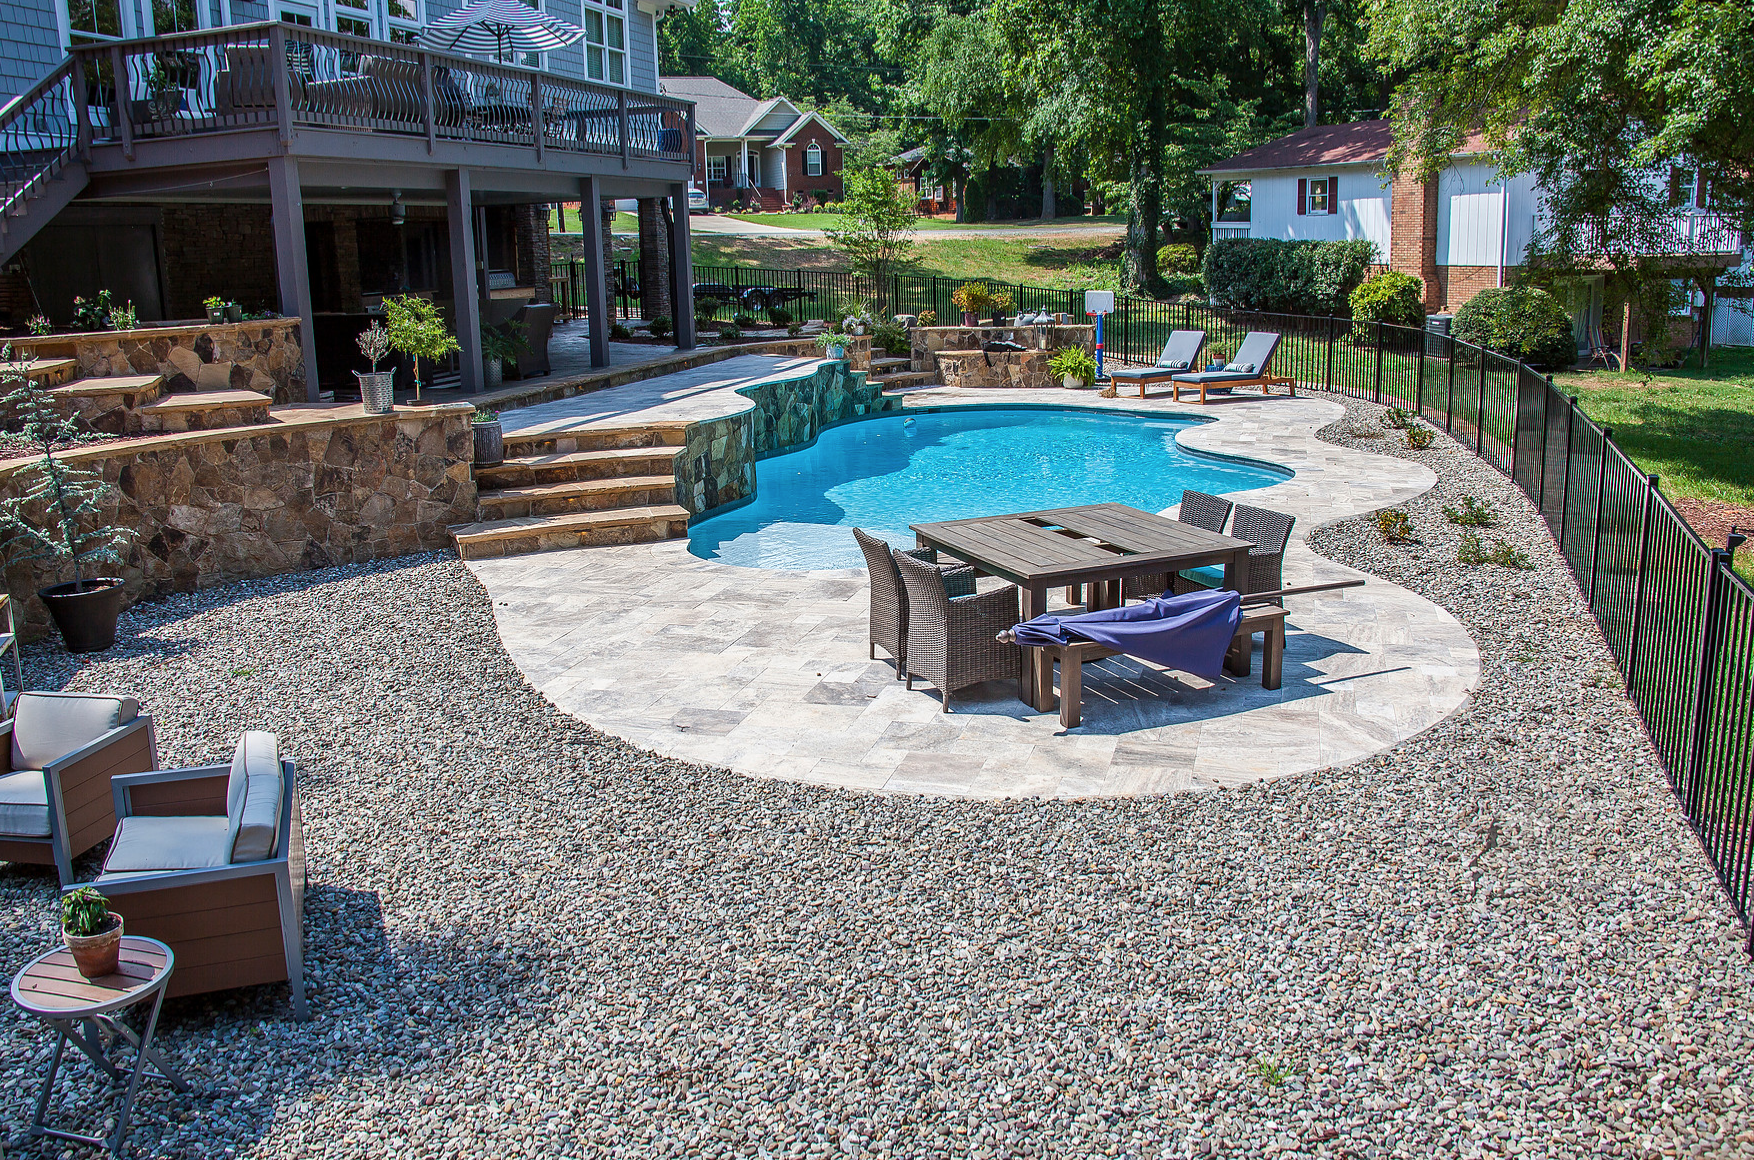 Superior Pool Builders Carolina Pool Consultants Discuss Concrete ...